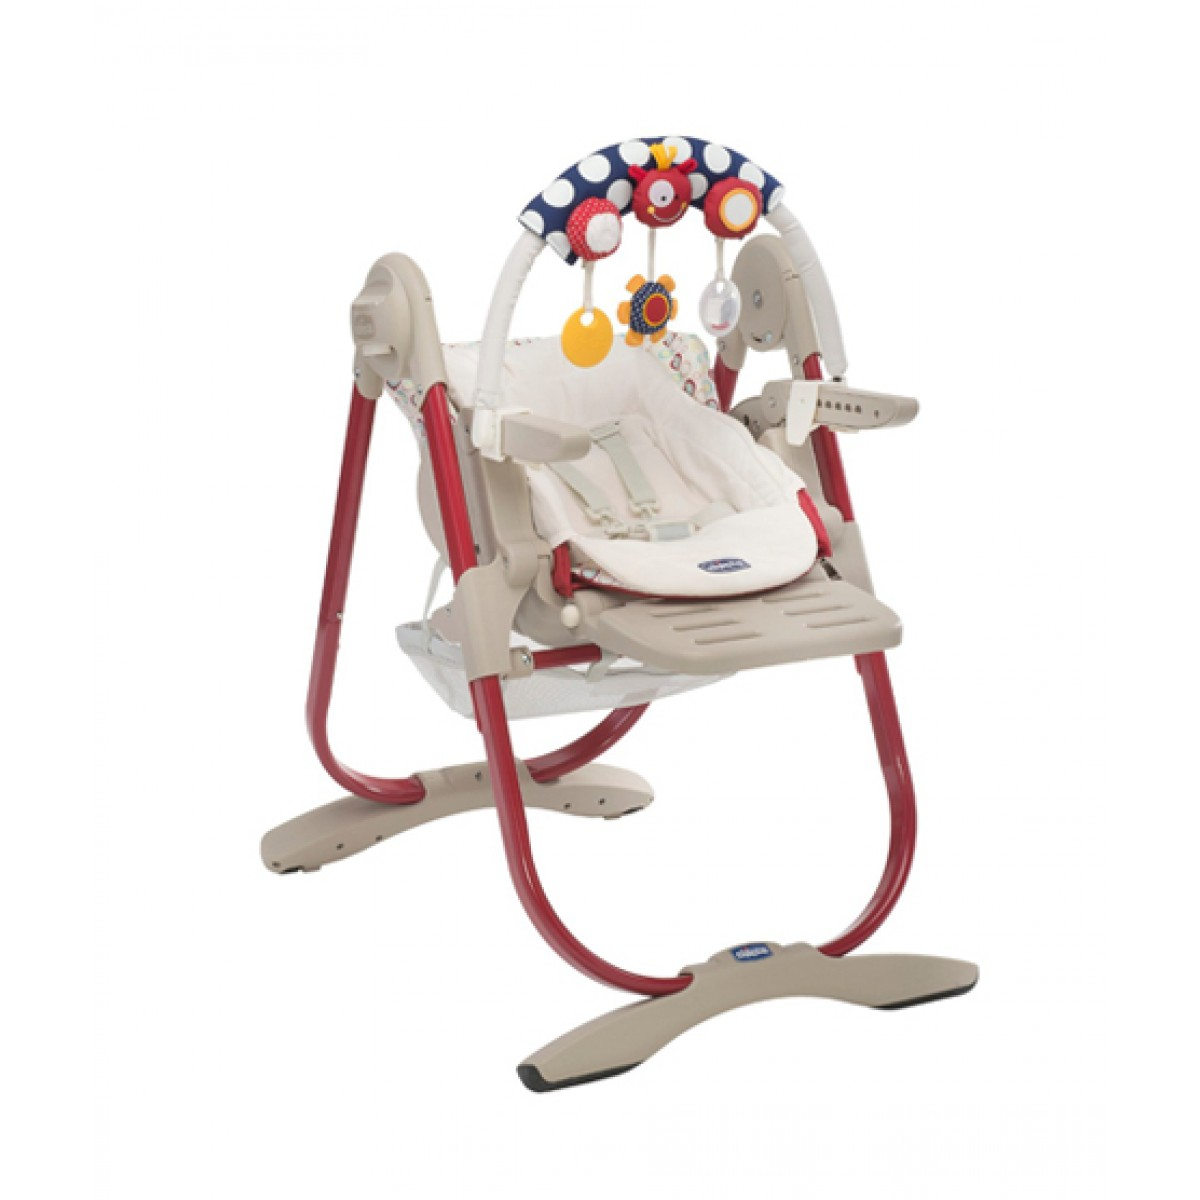 Rocking Chair Price In Karachi Chicco Polly Magic Baby High Chair Pois